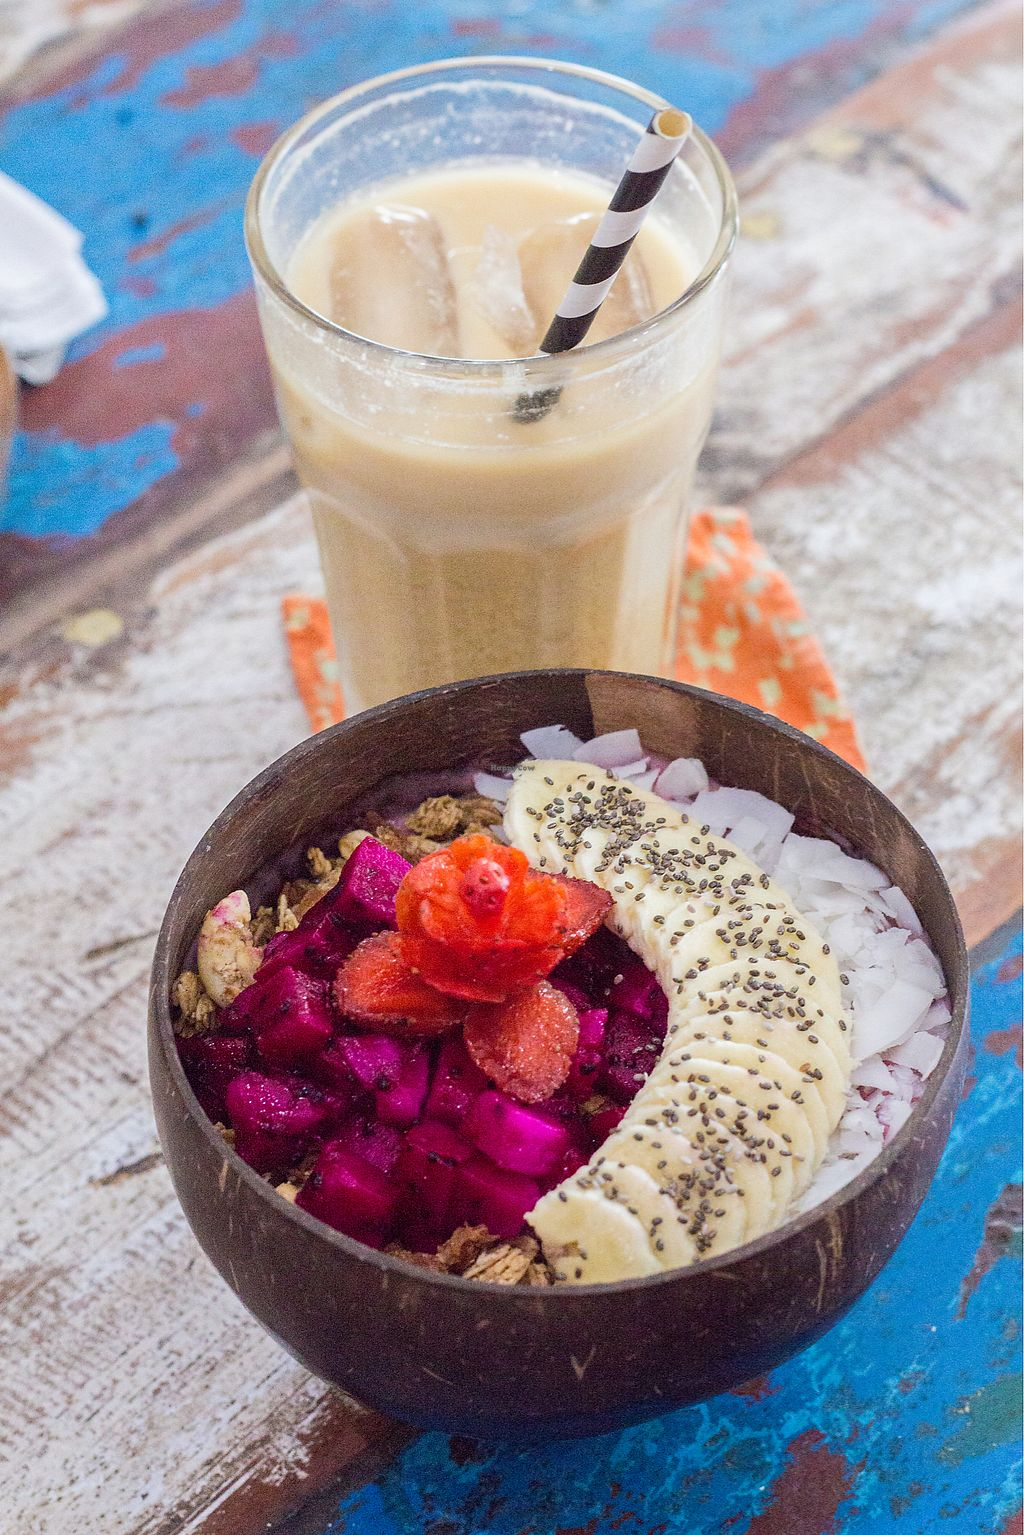 """Photo of CLOSED: The Spicy Coconut  by <a href=""""/members/profile/jessana"""">jessana</a> <br/>smoothie bowl  <br/> August 4, 2017  - <a href='/contact/abuse/image/73419/288507'>Report</a>"""